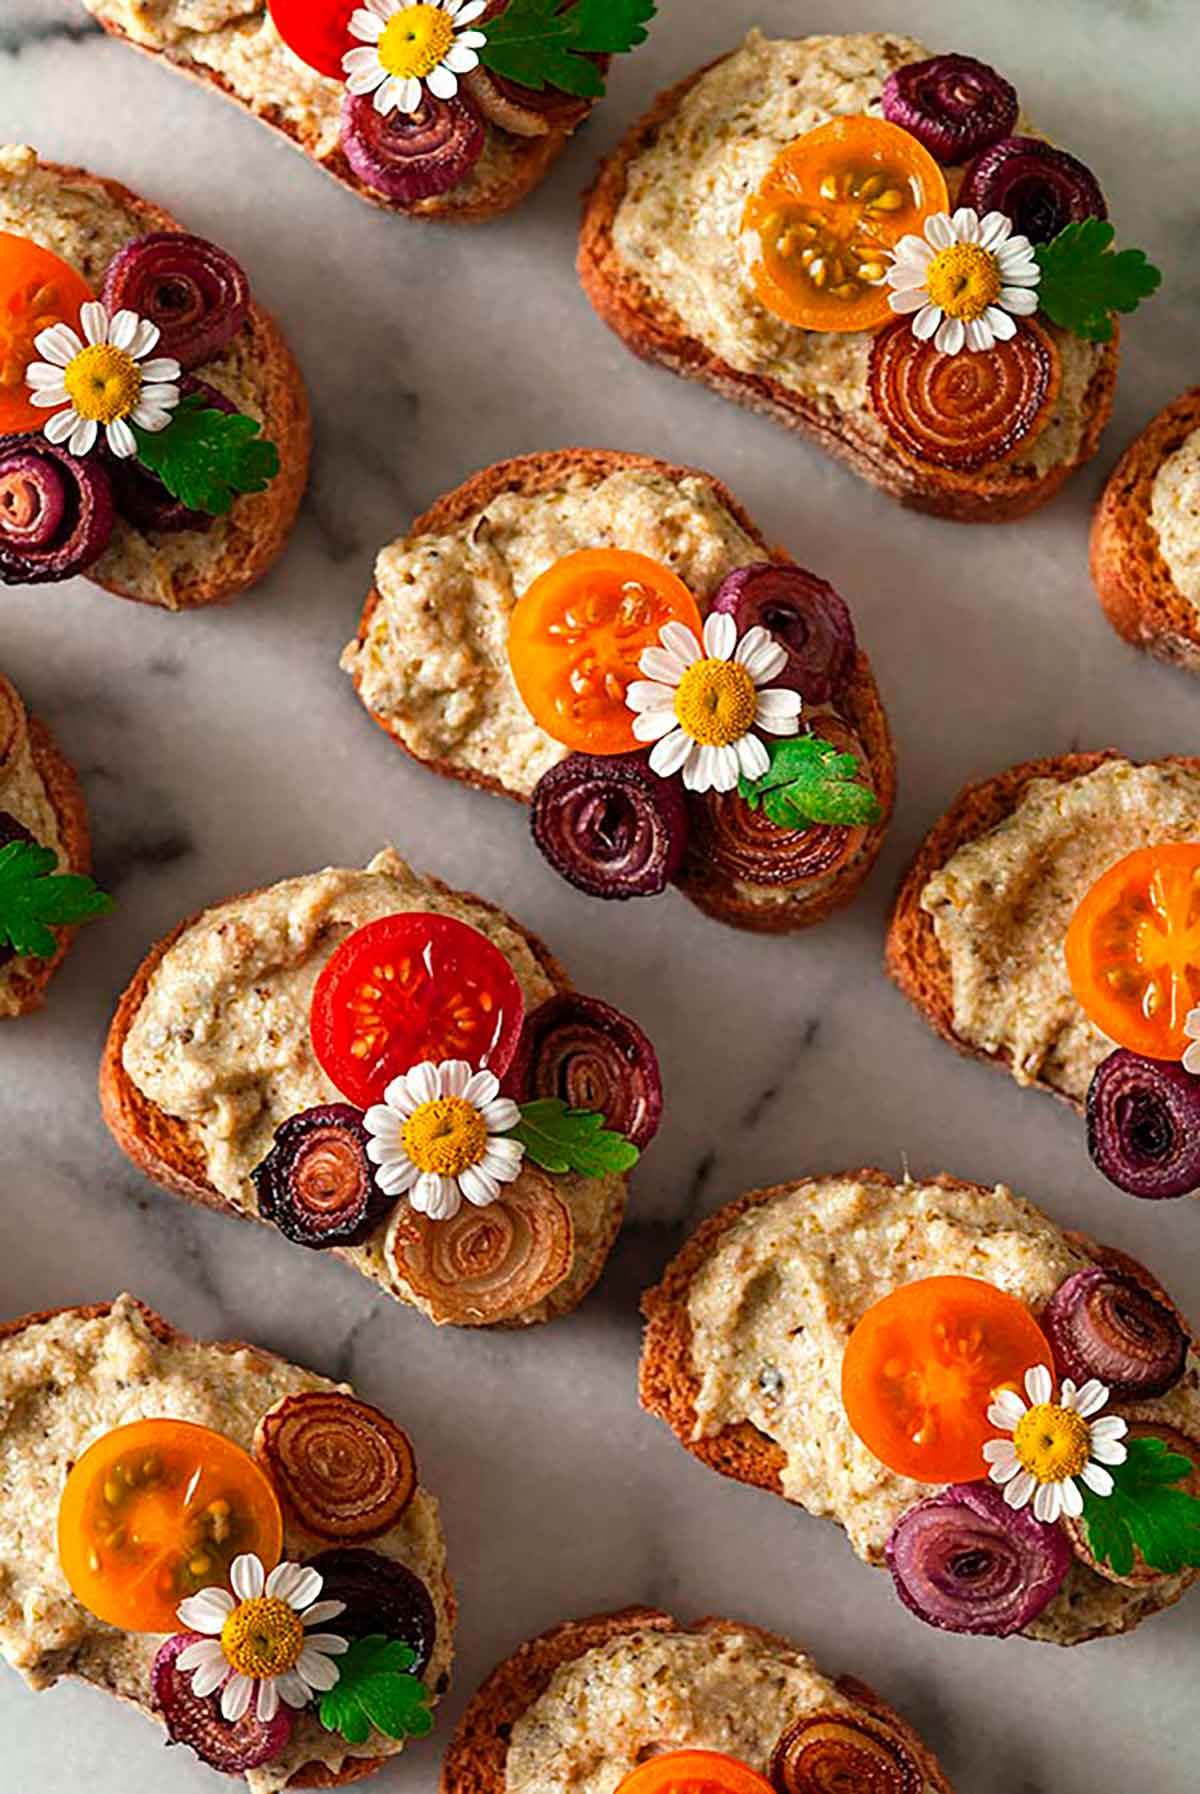 Crostini garnished with daisies, onions and tomatoes on a marble plate